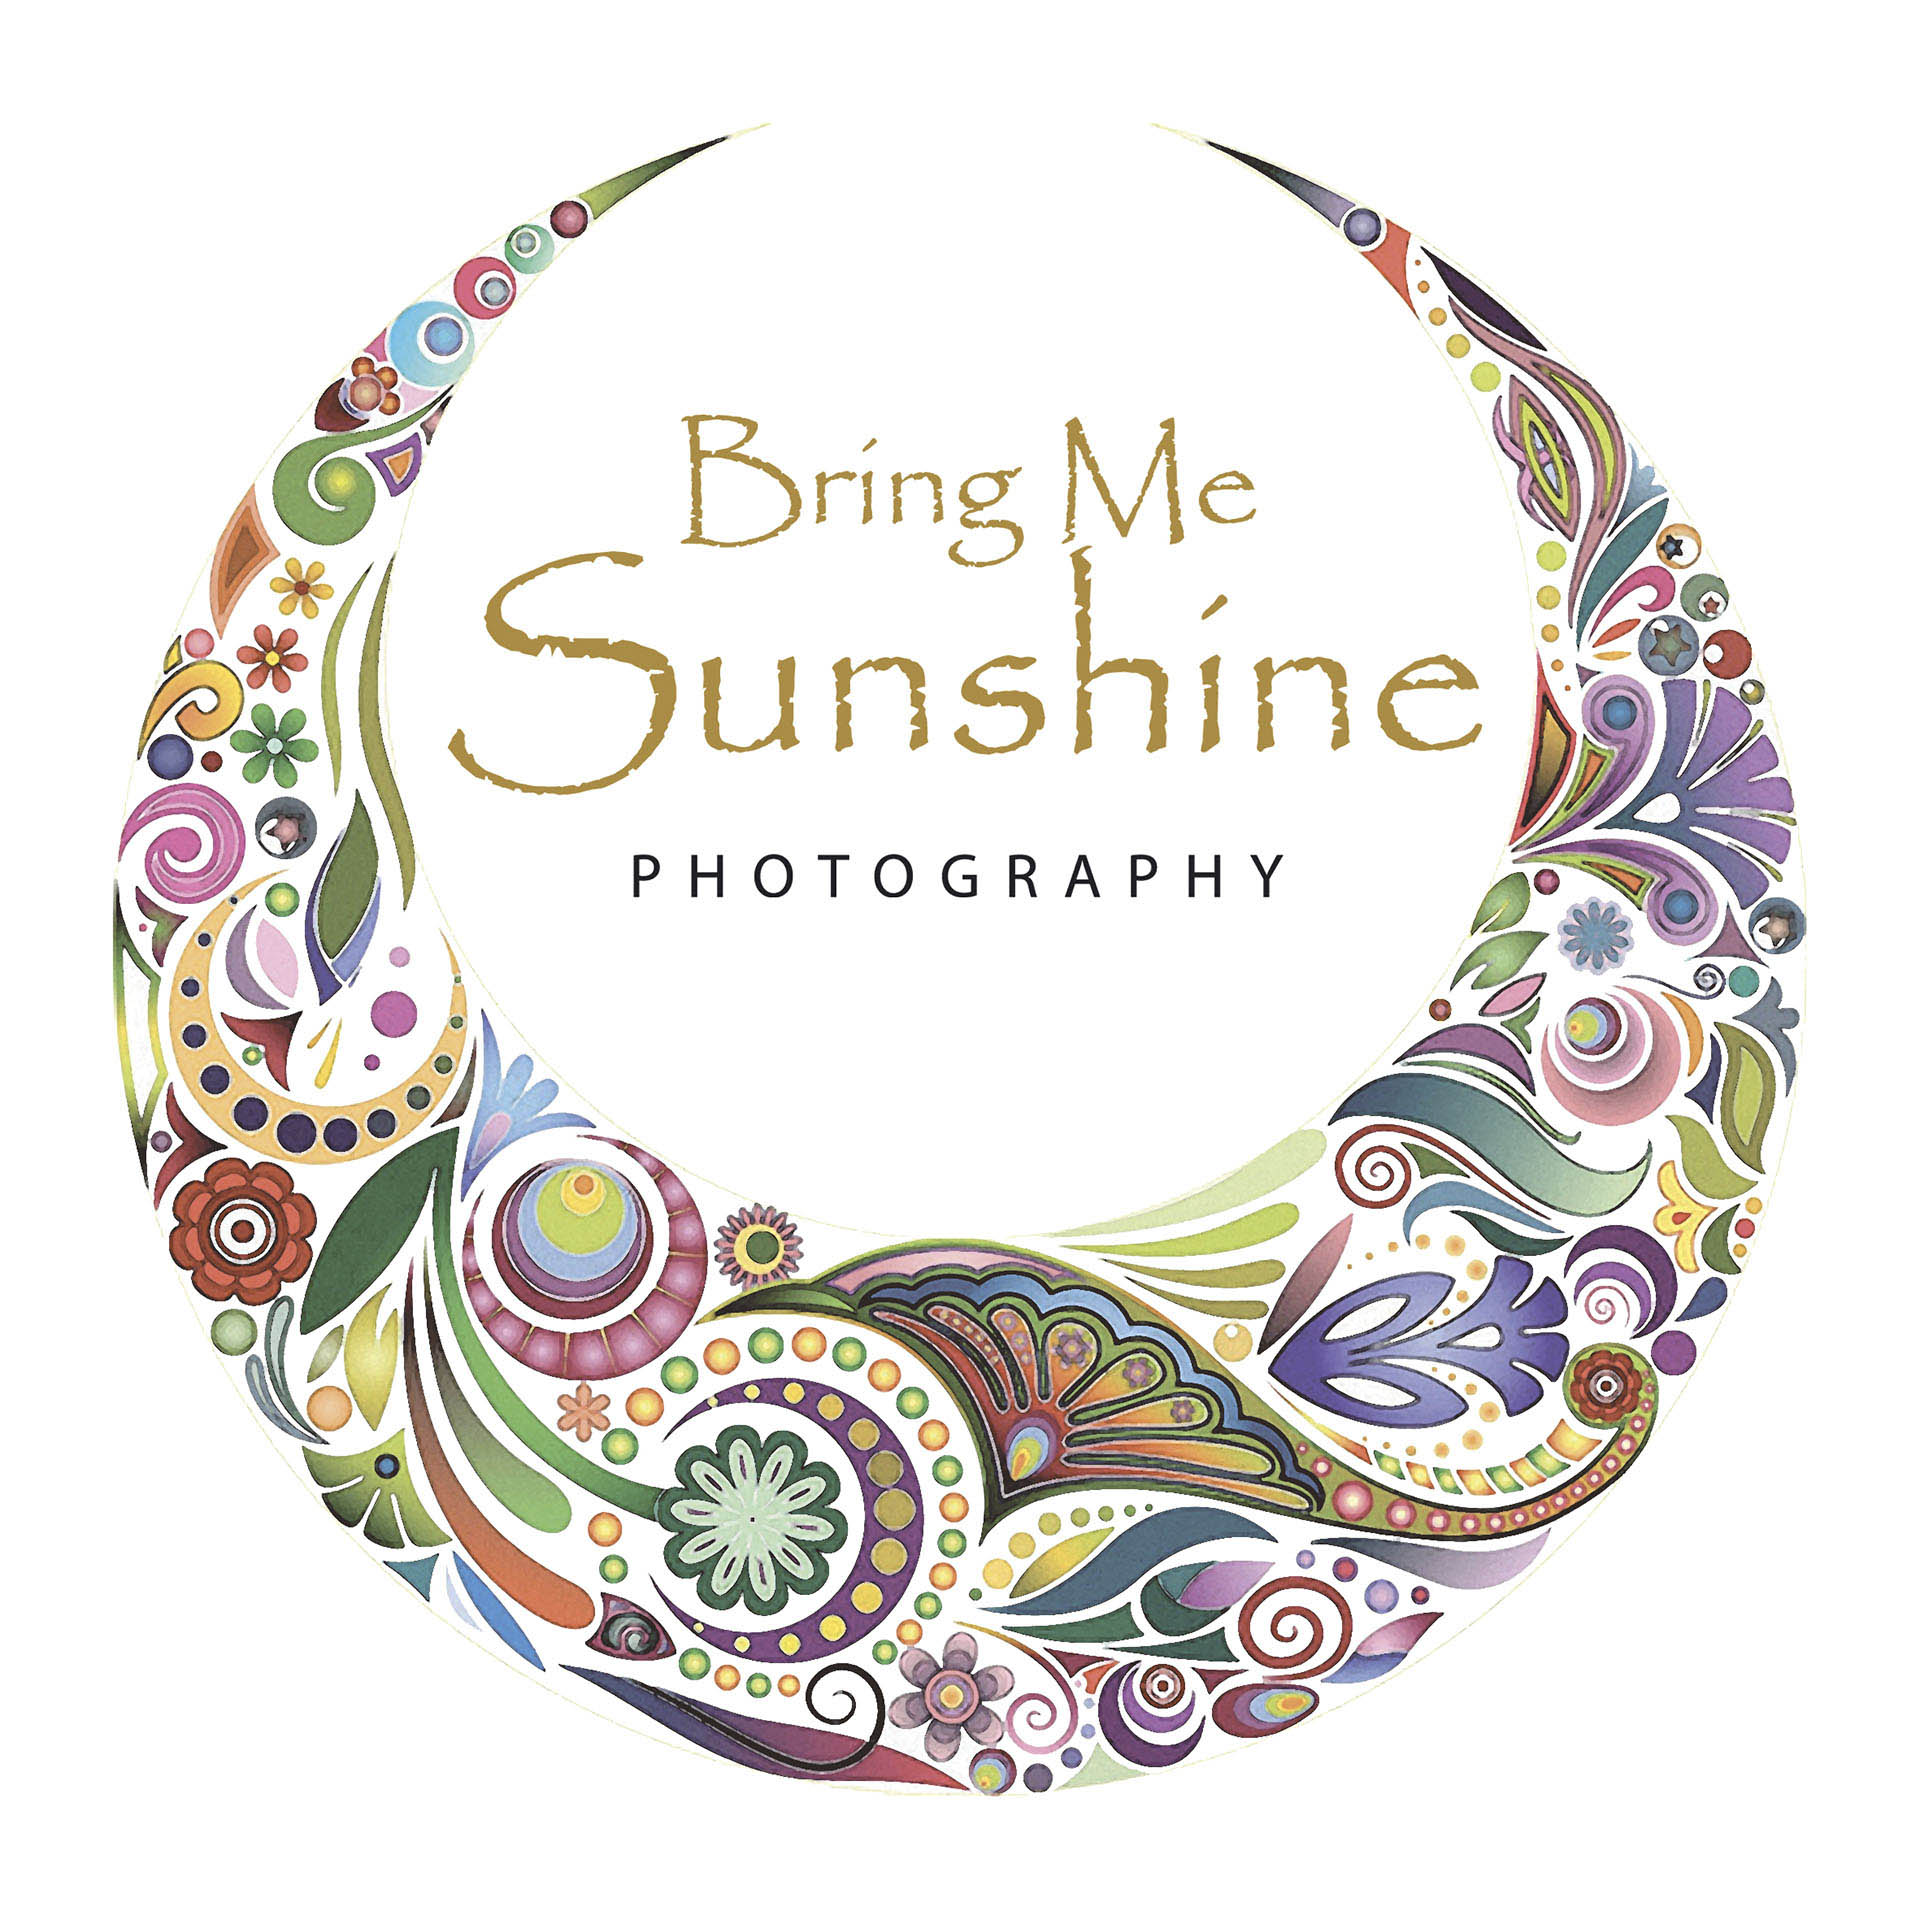 Bring Me Sunshine Photography's logo